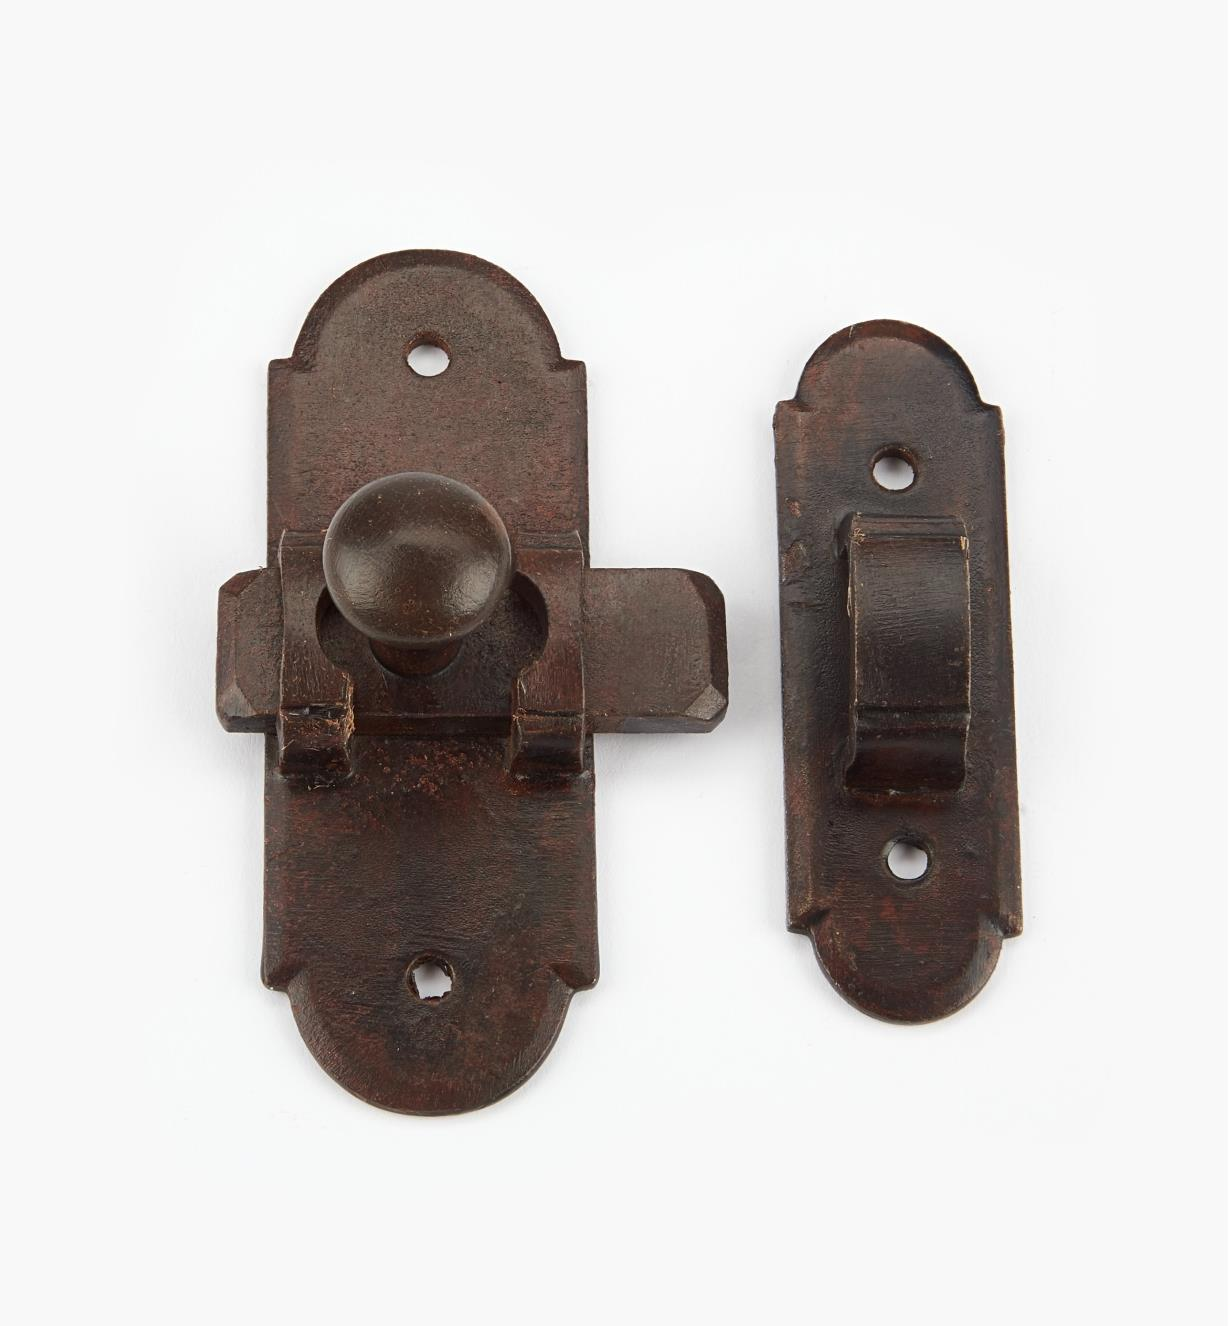 00L0910 - Small Steel Sliding Latch